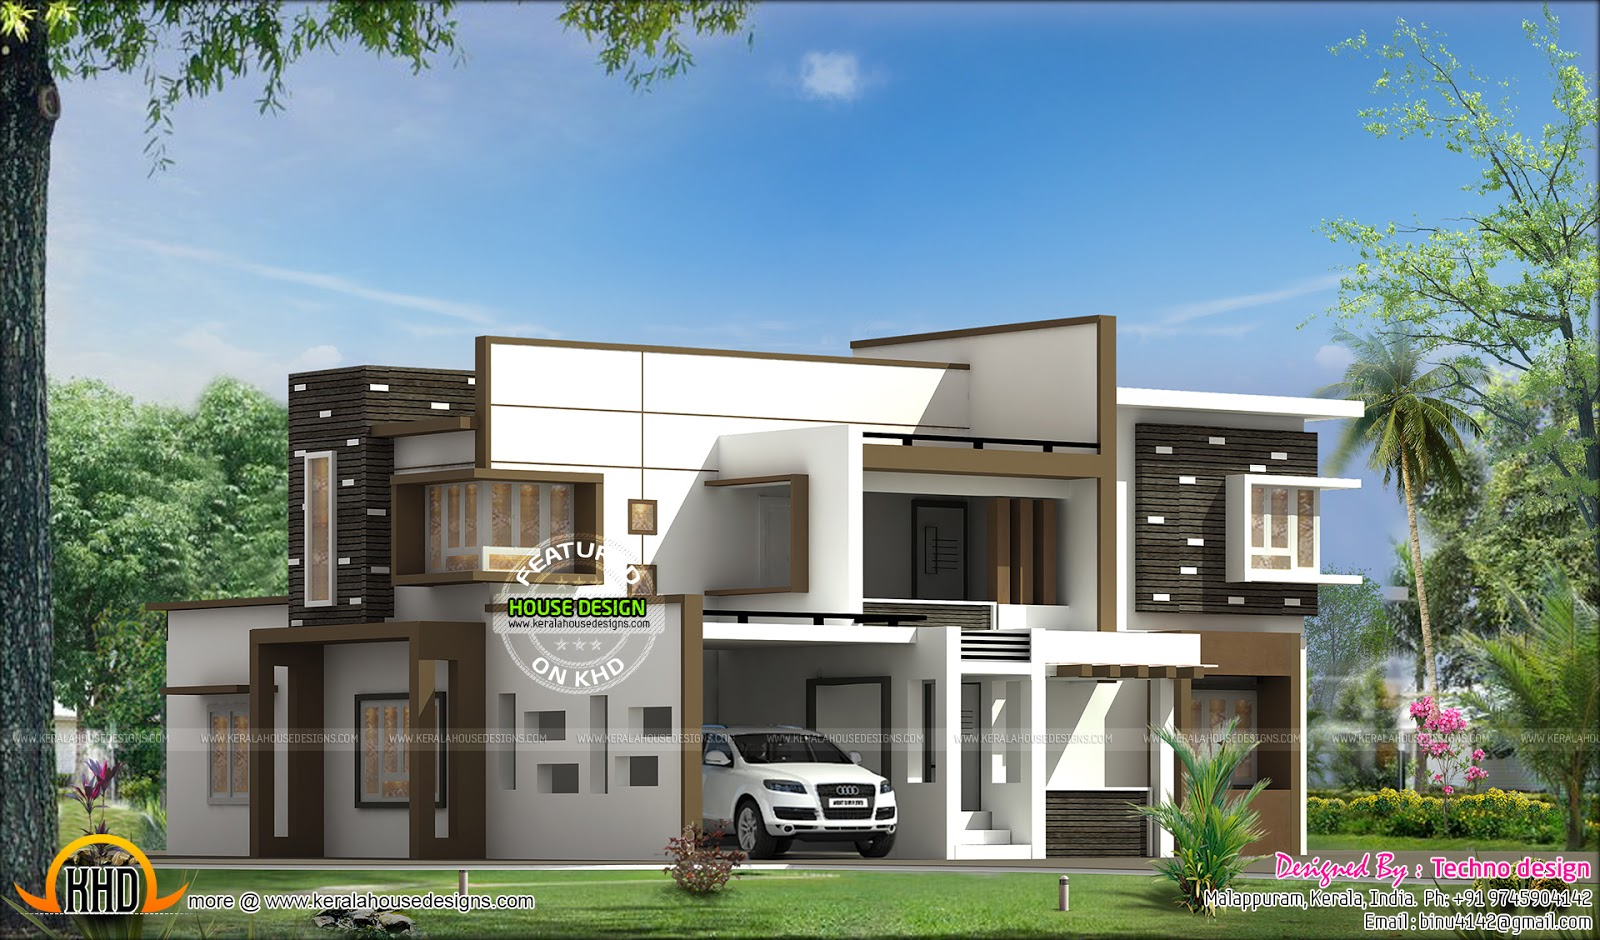 Flat Roof Modern 1870 Sq Ft House Kerala Home Design And